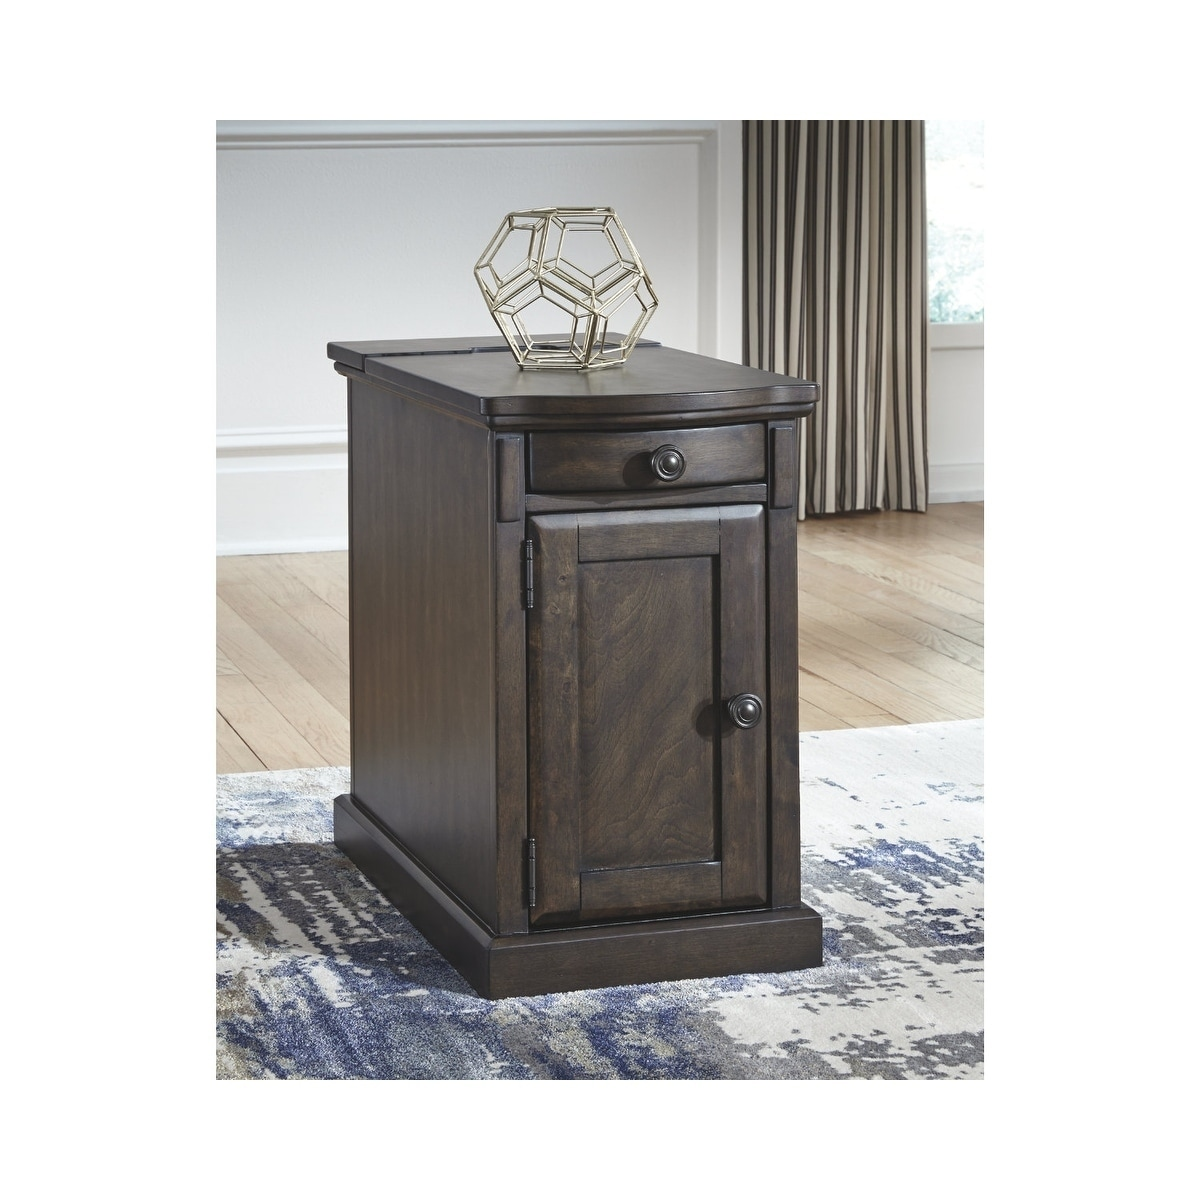 Signature Design by Ashley Laflorn Warm Brown Chairside End Table